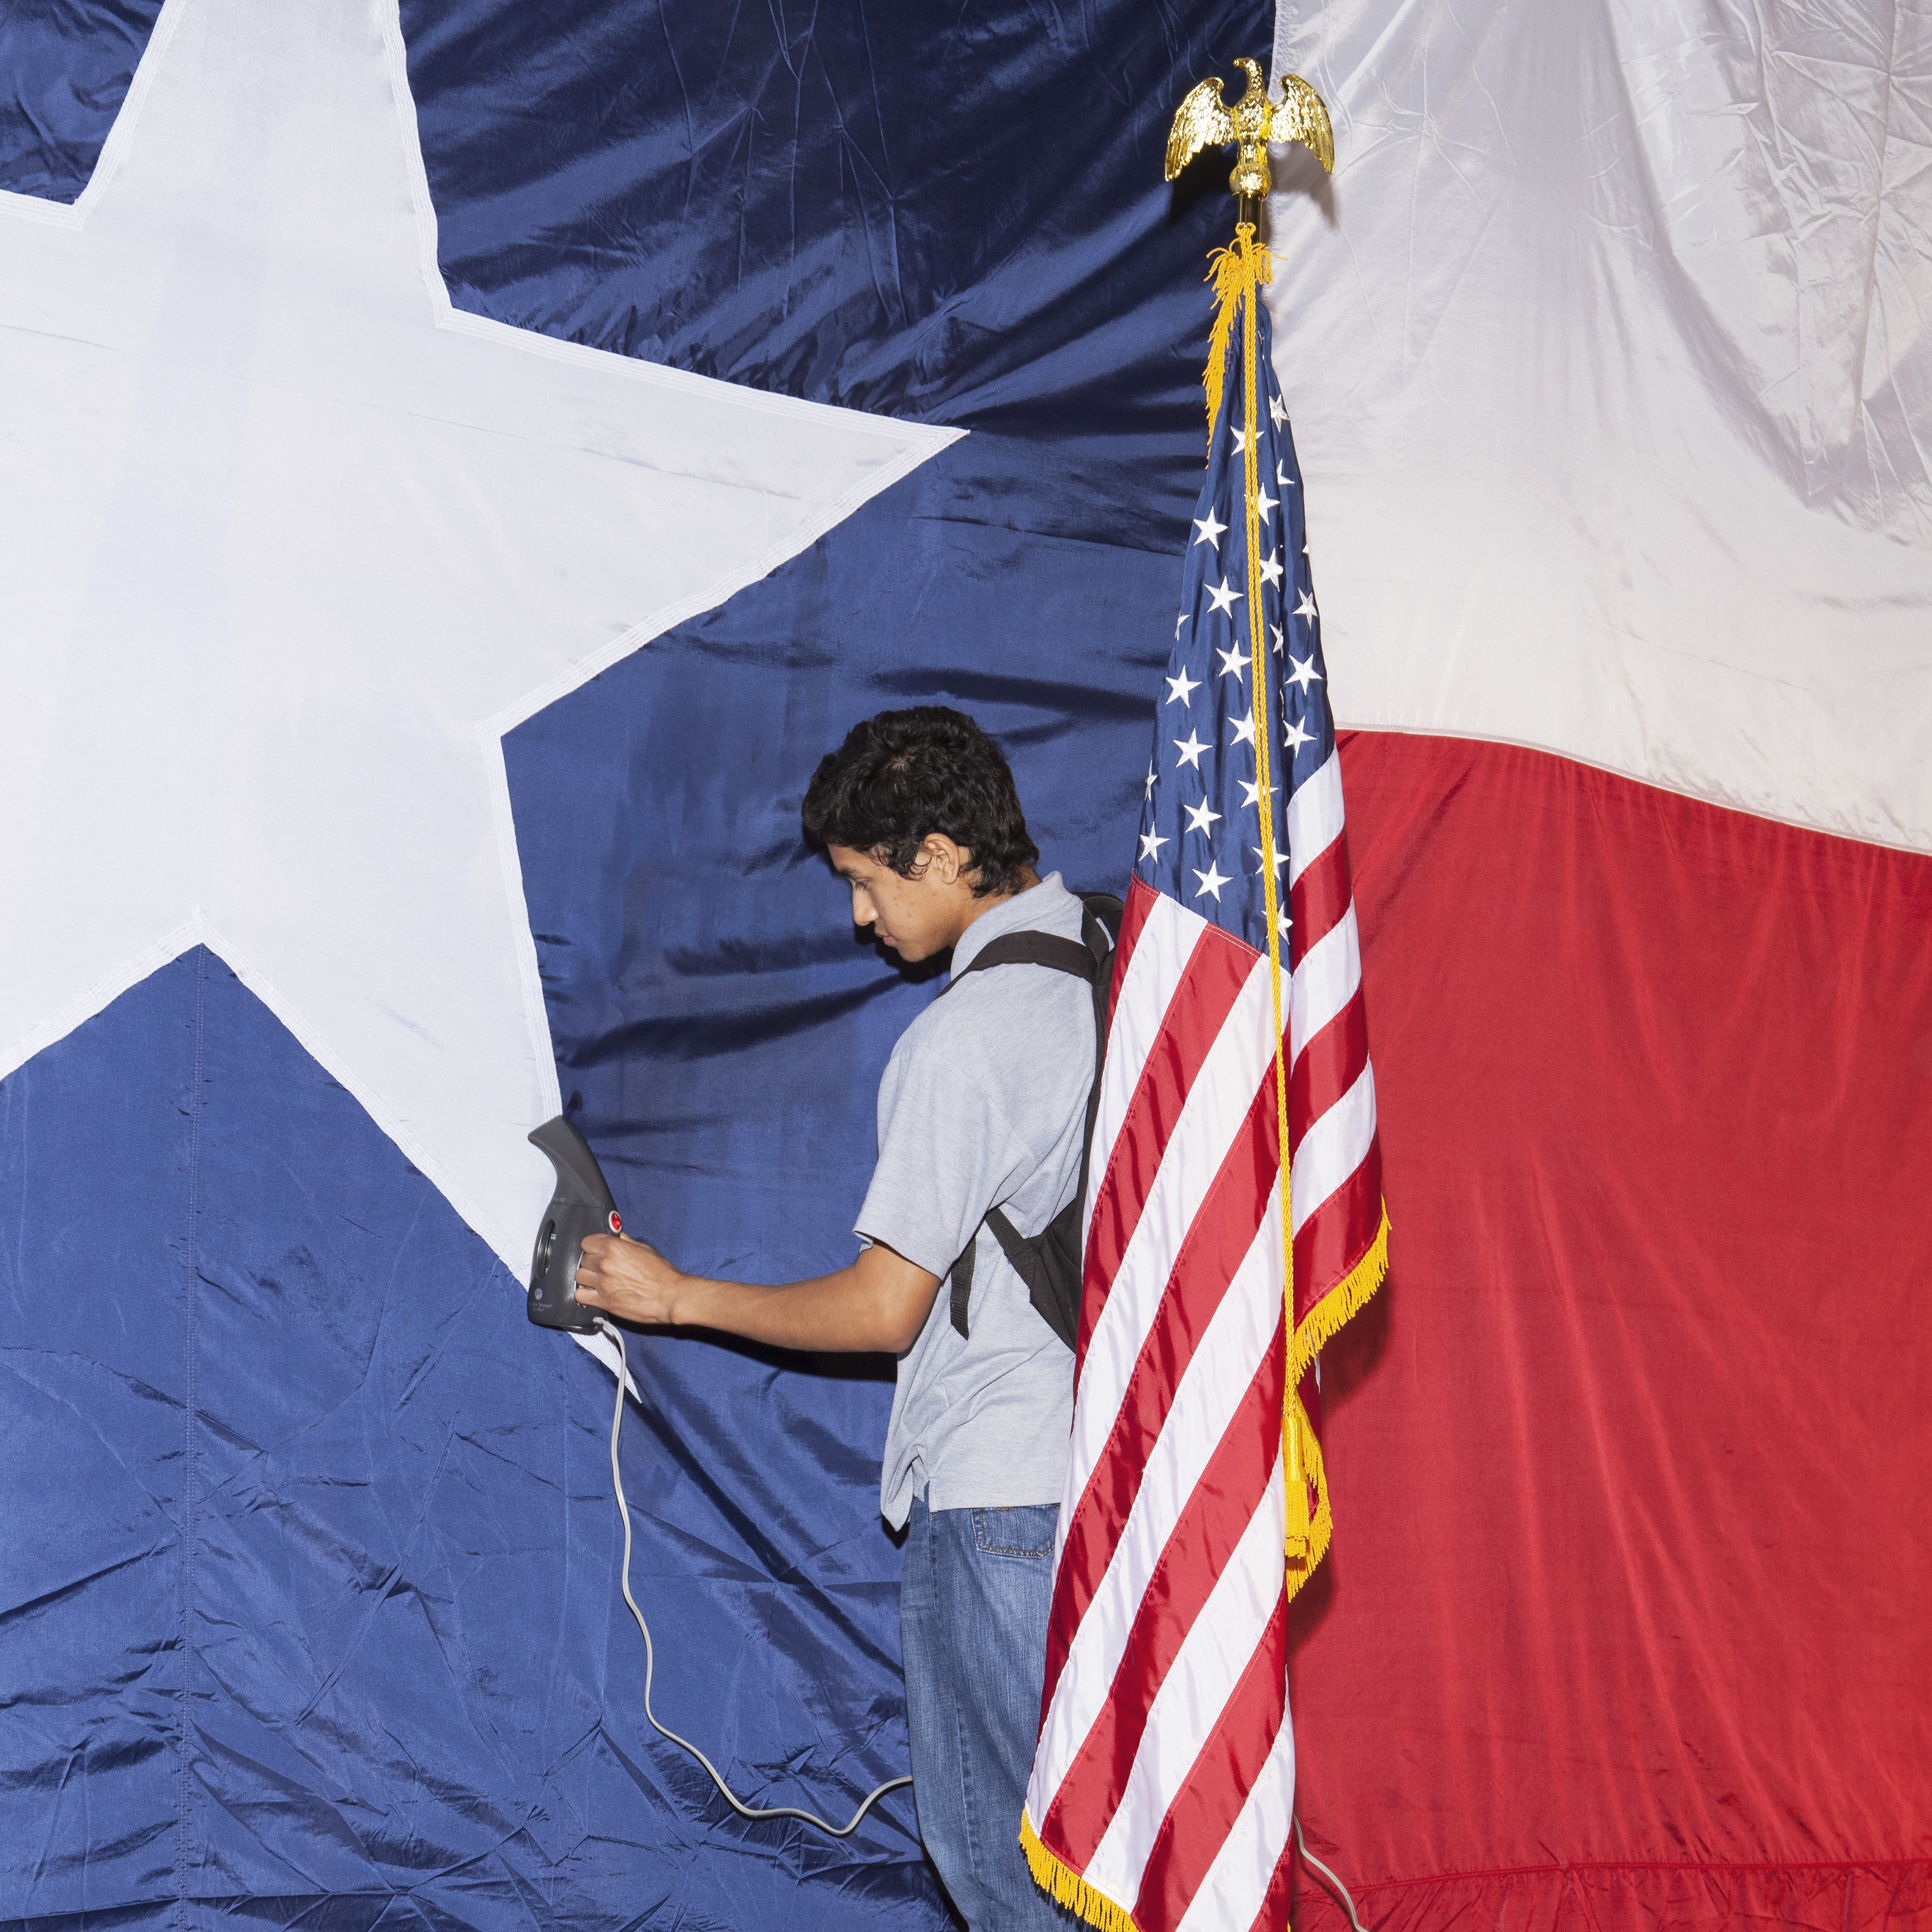 Jose Maybit Lopez, an intern for Texas Sen. Ted Cruz, steams a flag in preparation for the Election Night party in Houston.